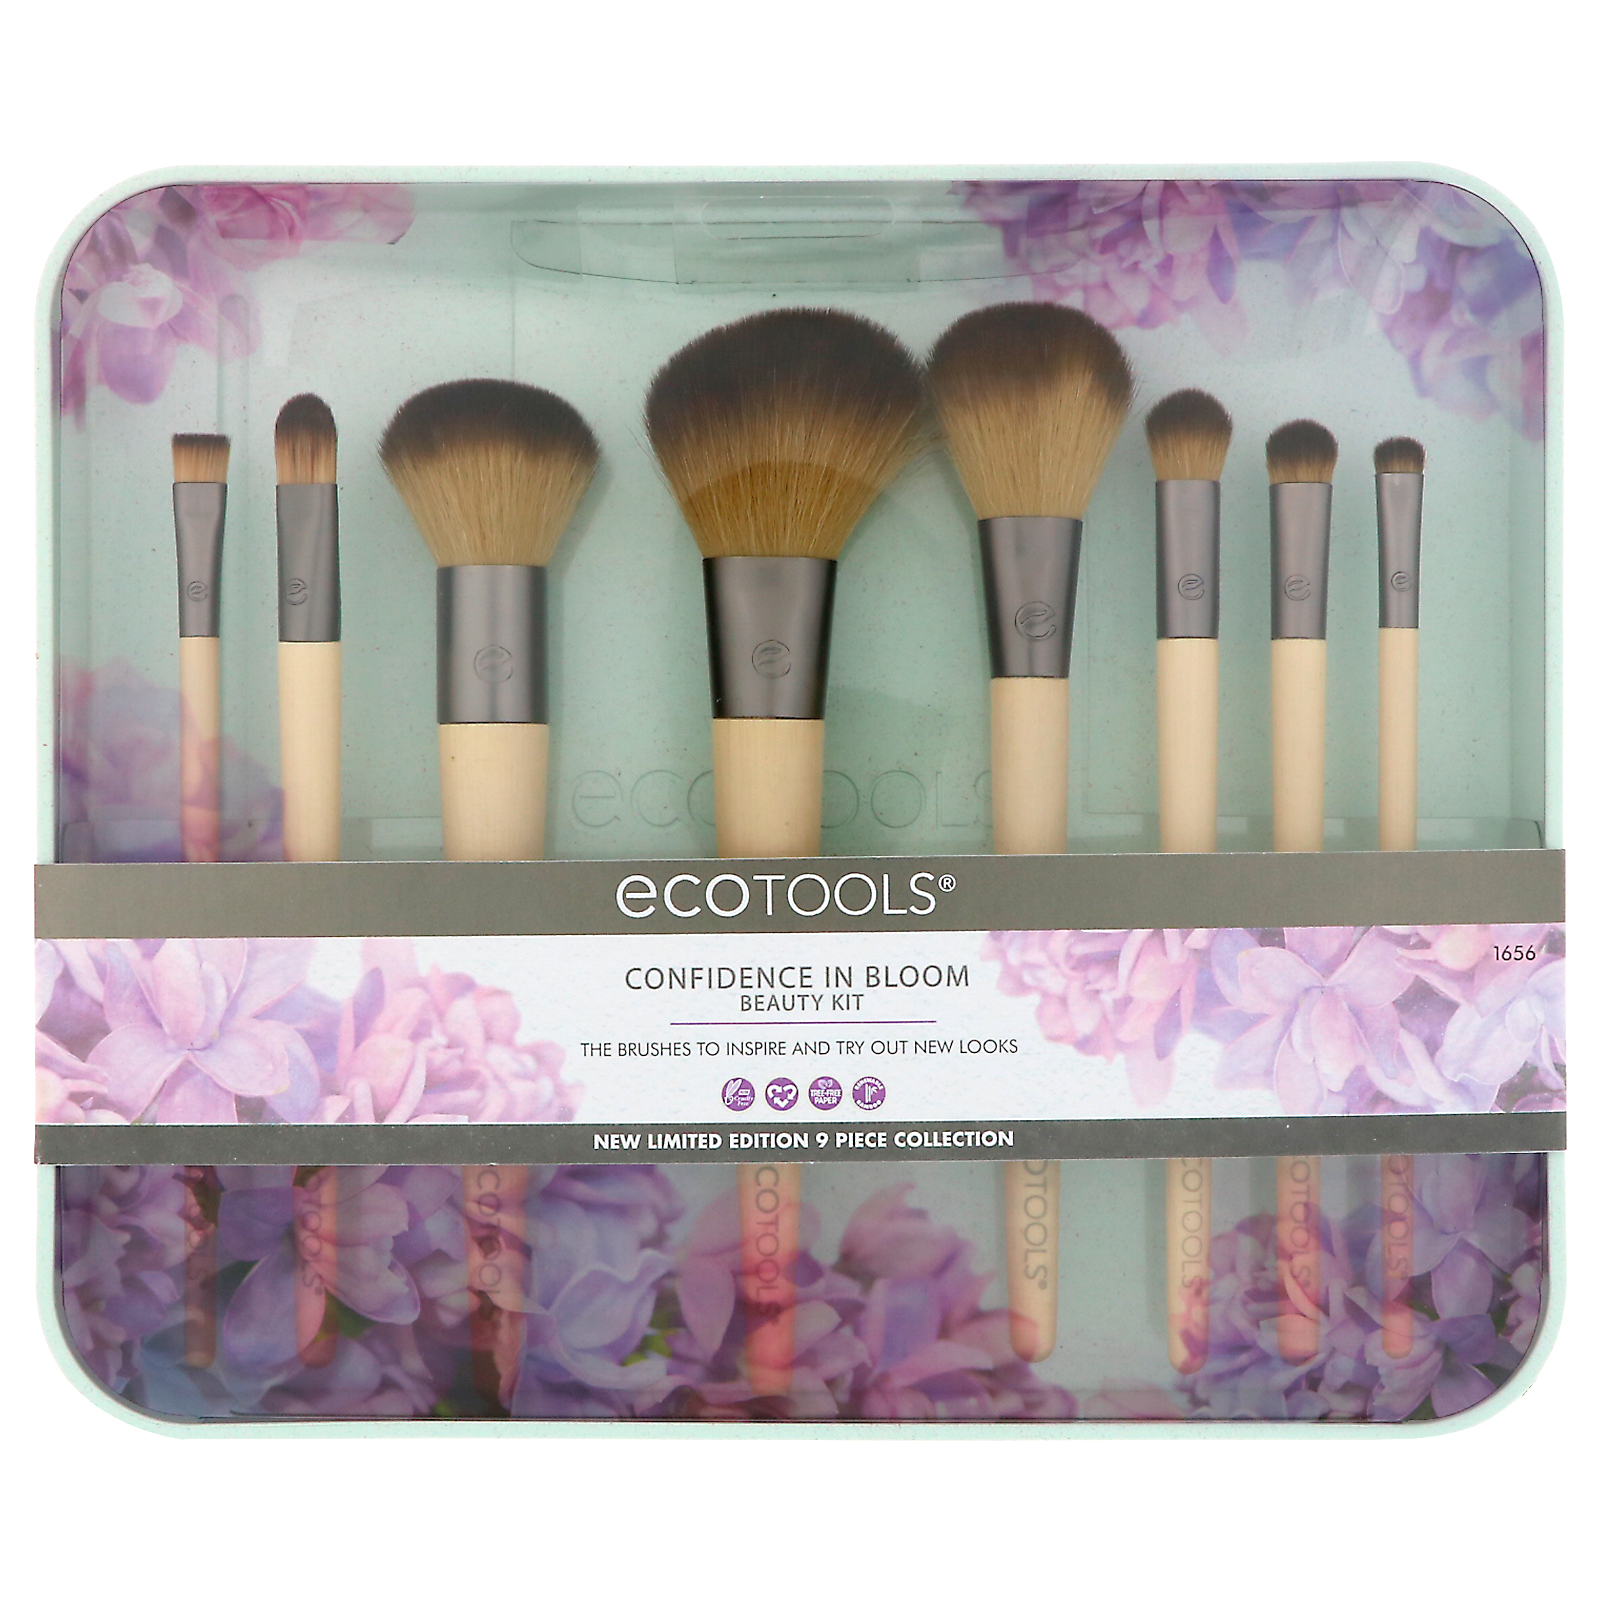 eb630b2af EcoTools, Confidence in Bloom Beauty Kit, 9 Piece Collection (Discontinued  Item)